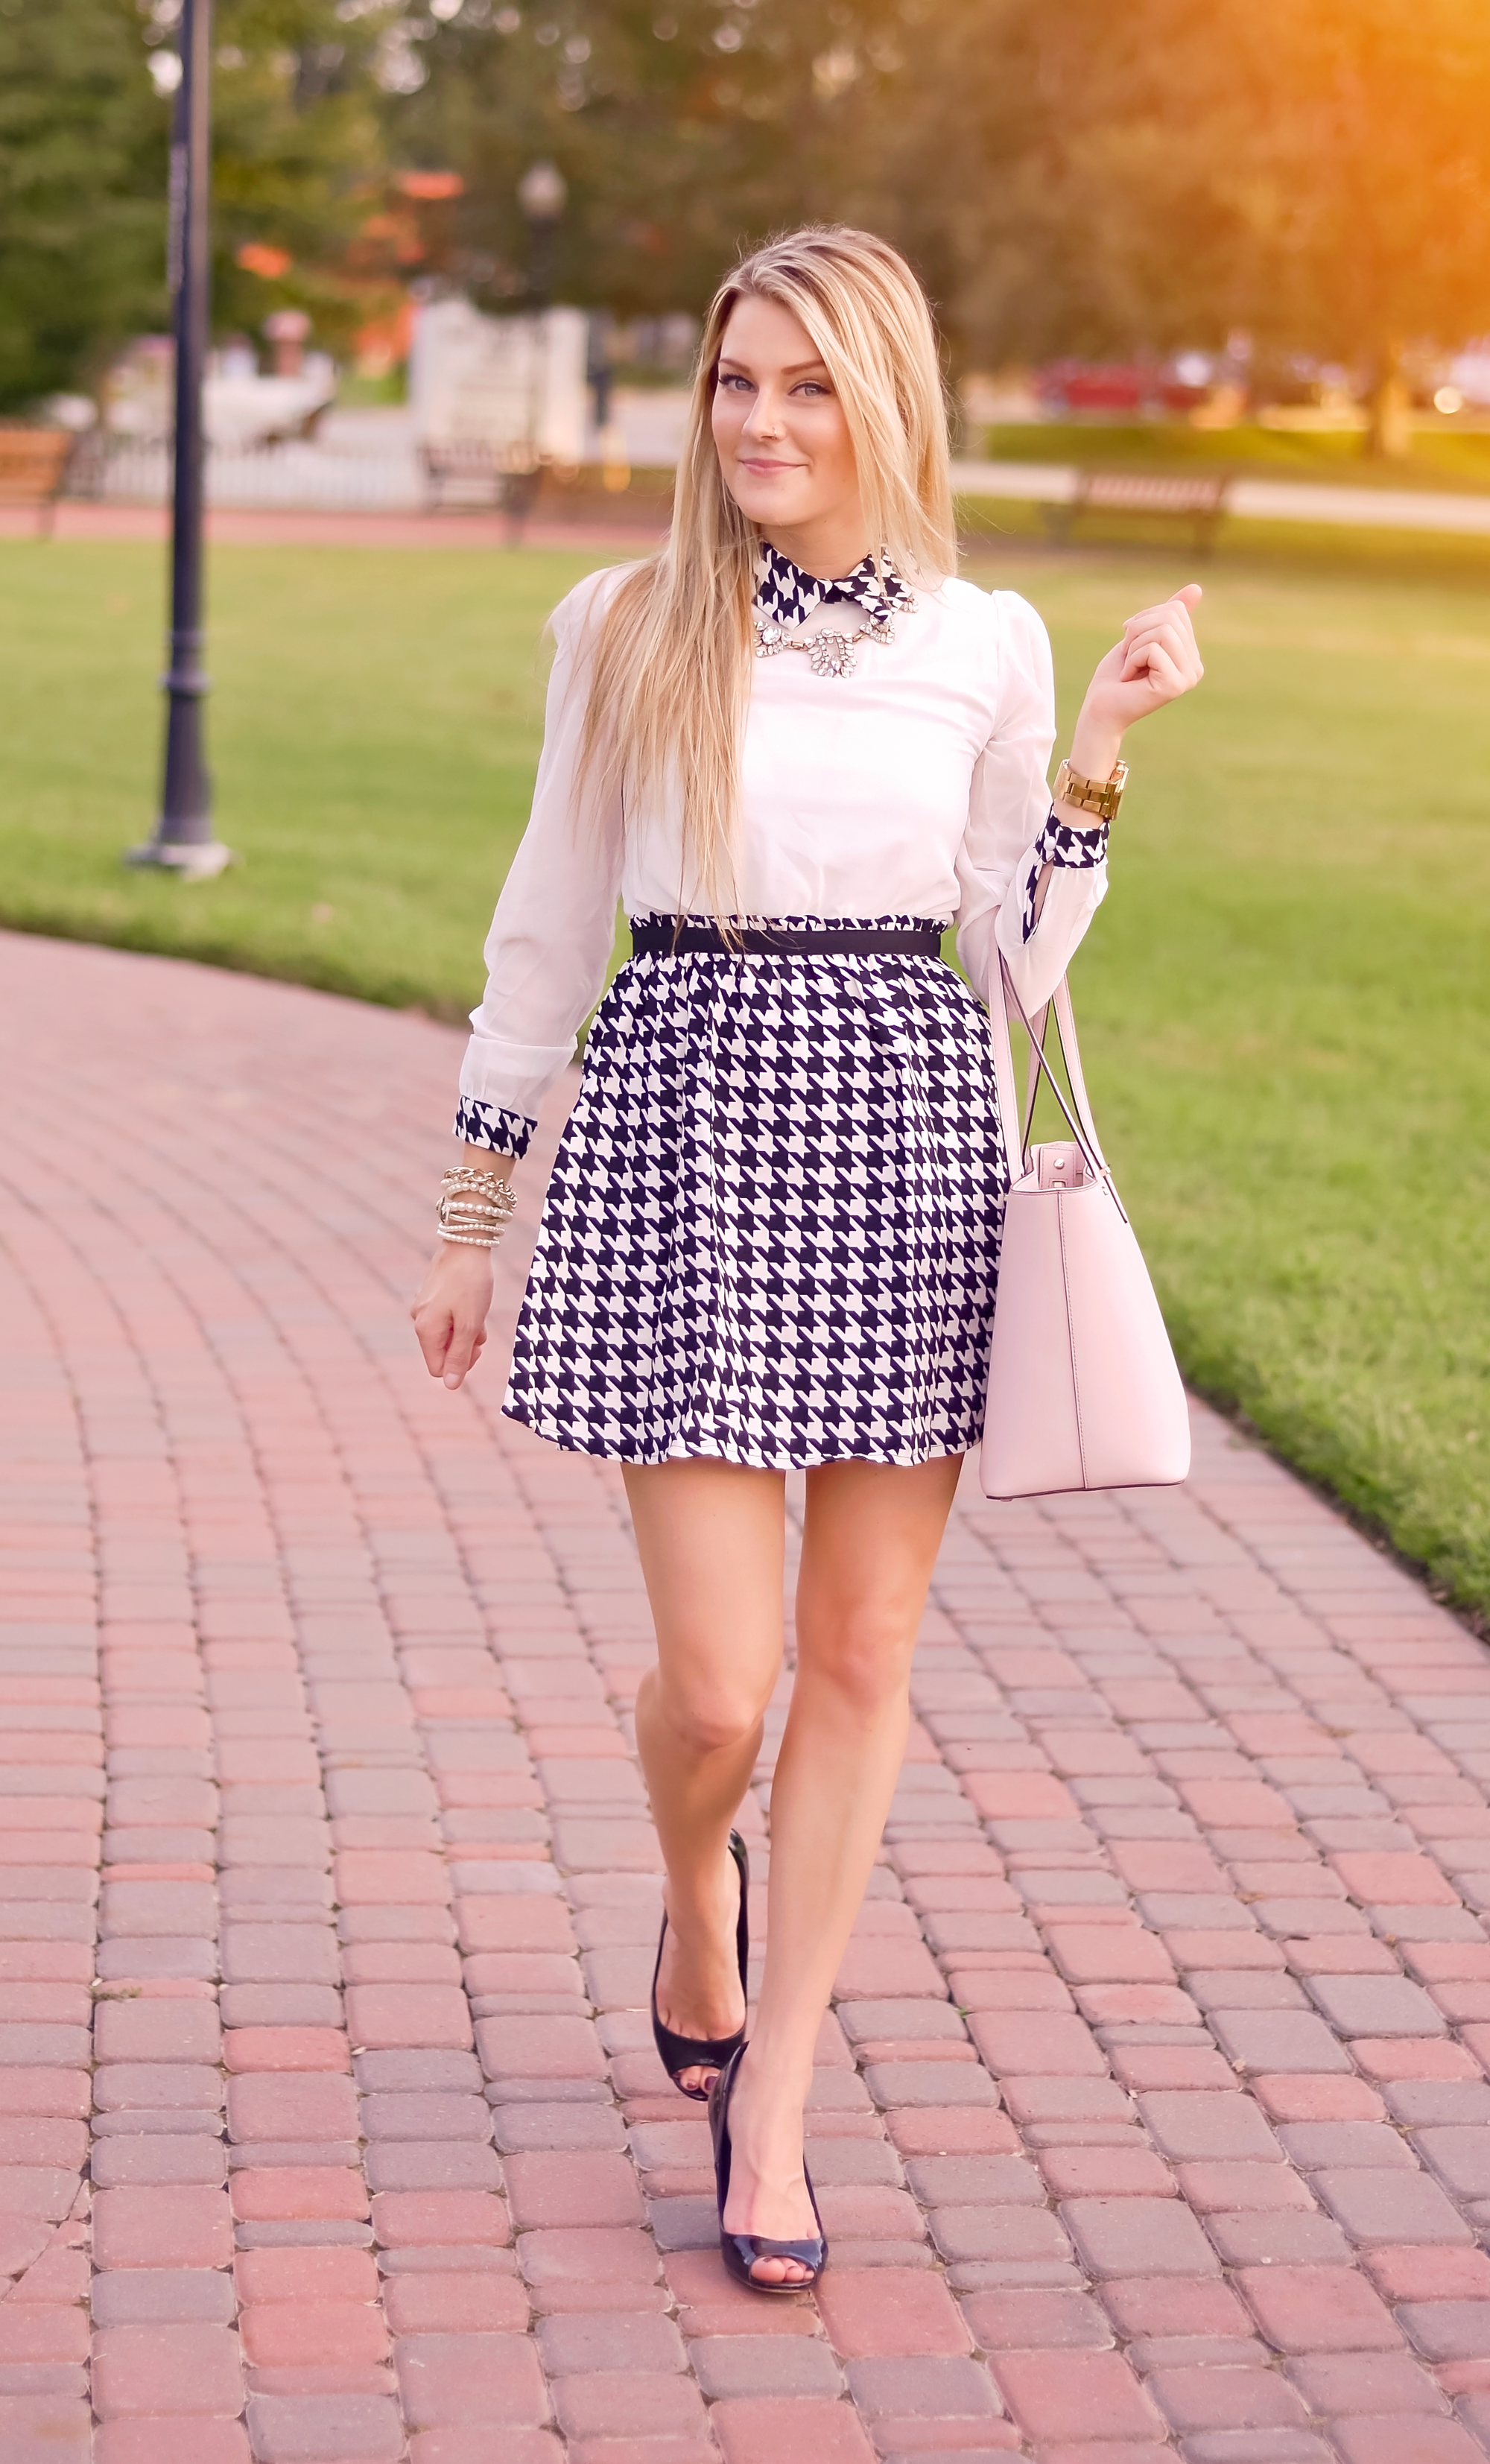 A Houndstooth Dress || Featuring Romwe Fashion